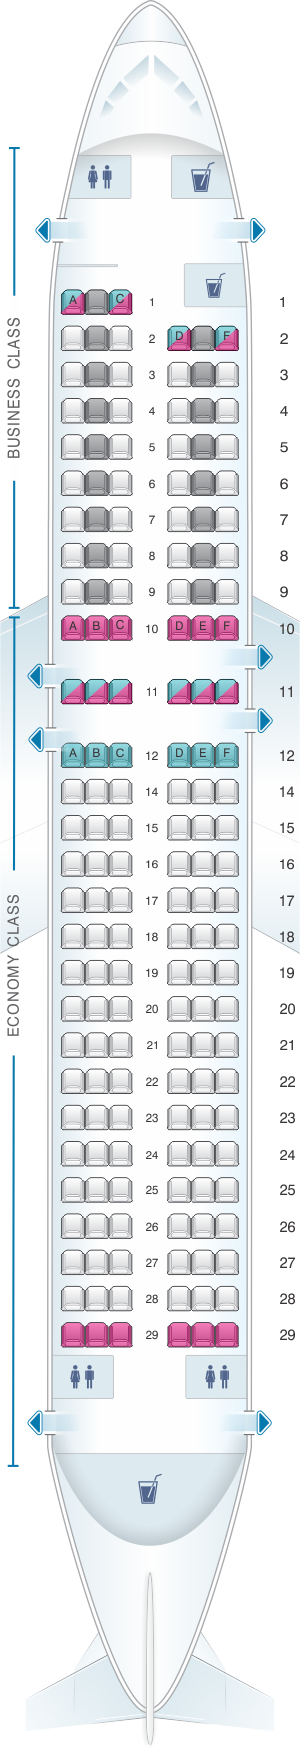 Seat map for Air France Airbus A320 Europe V3